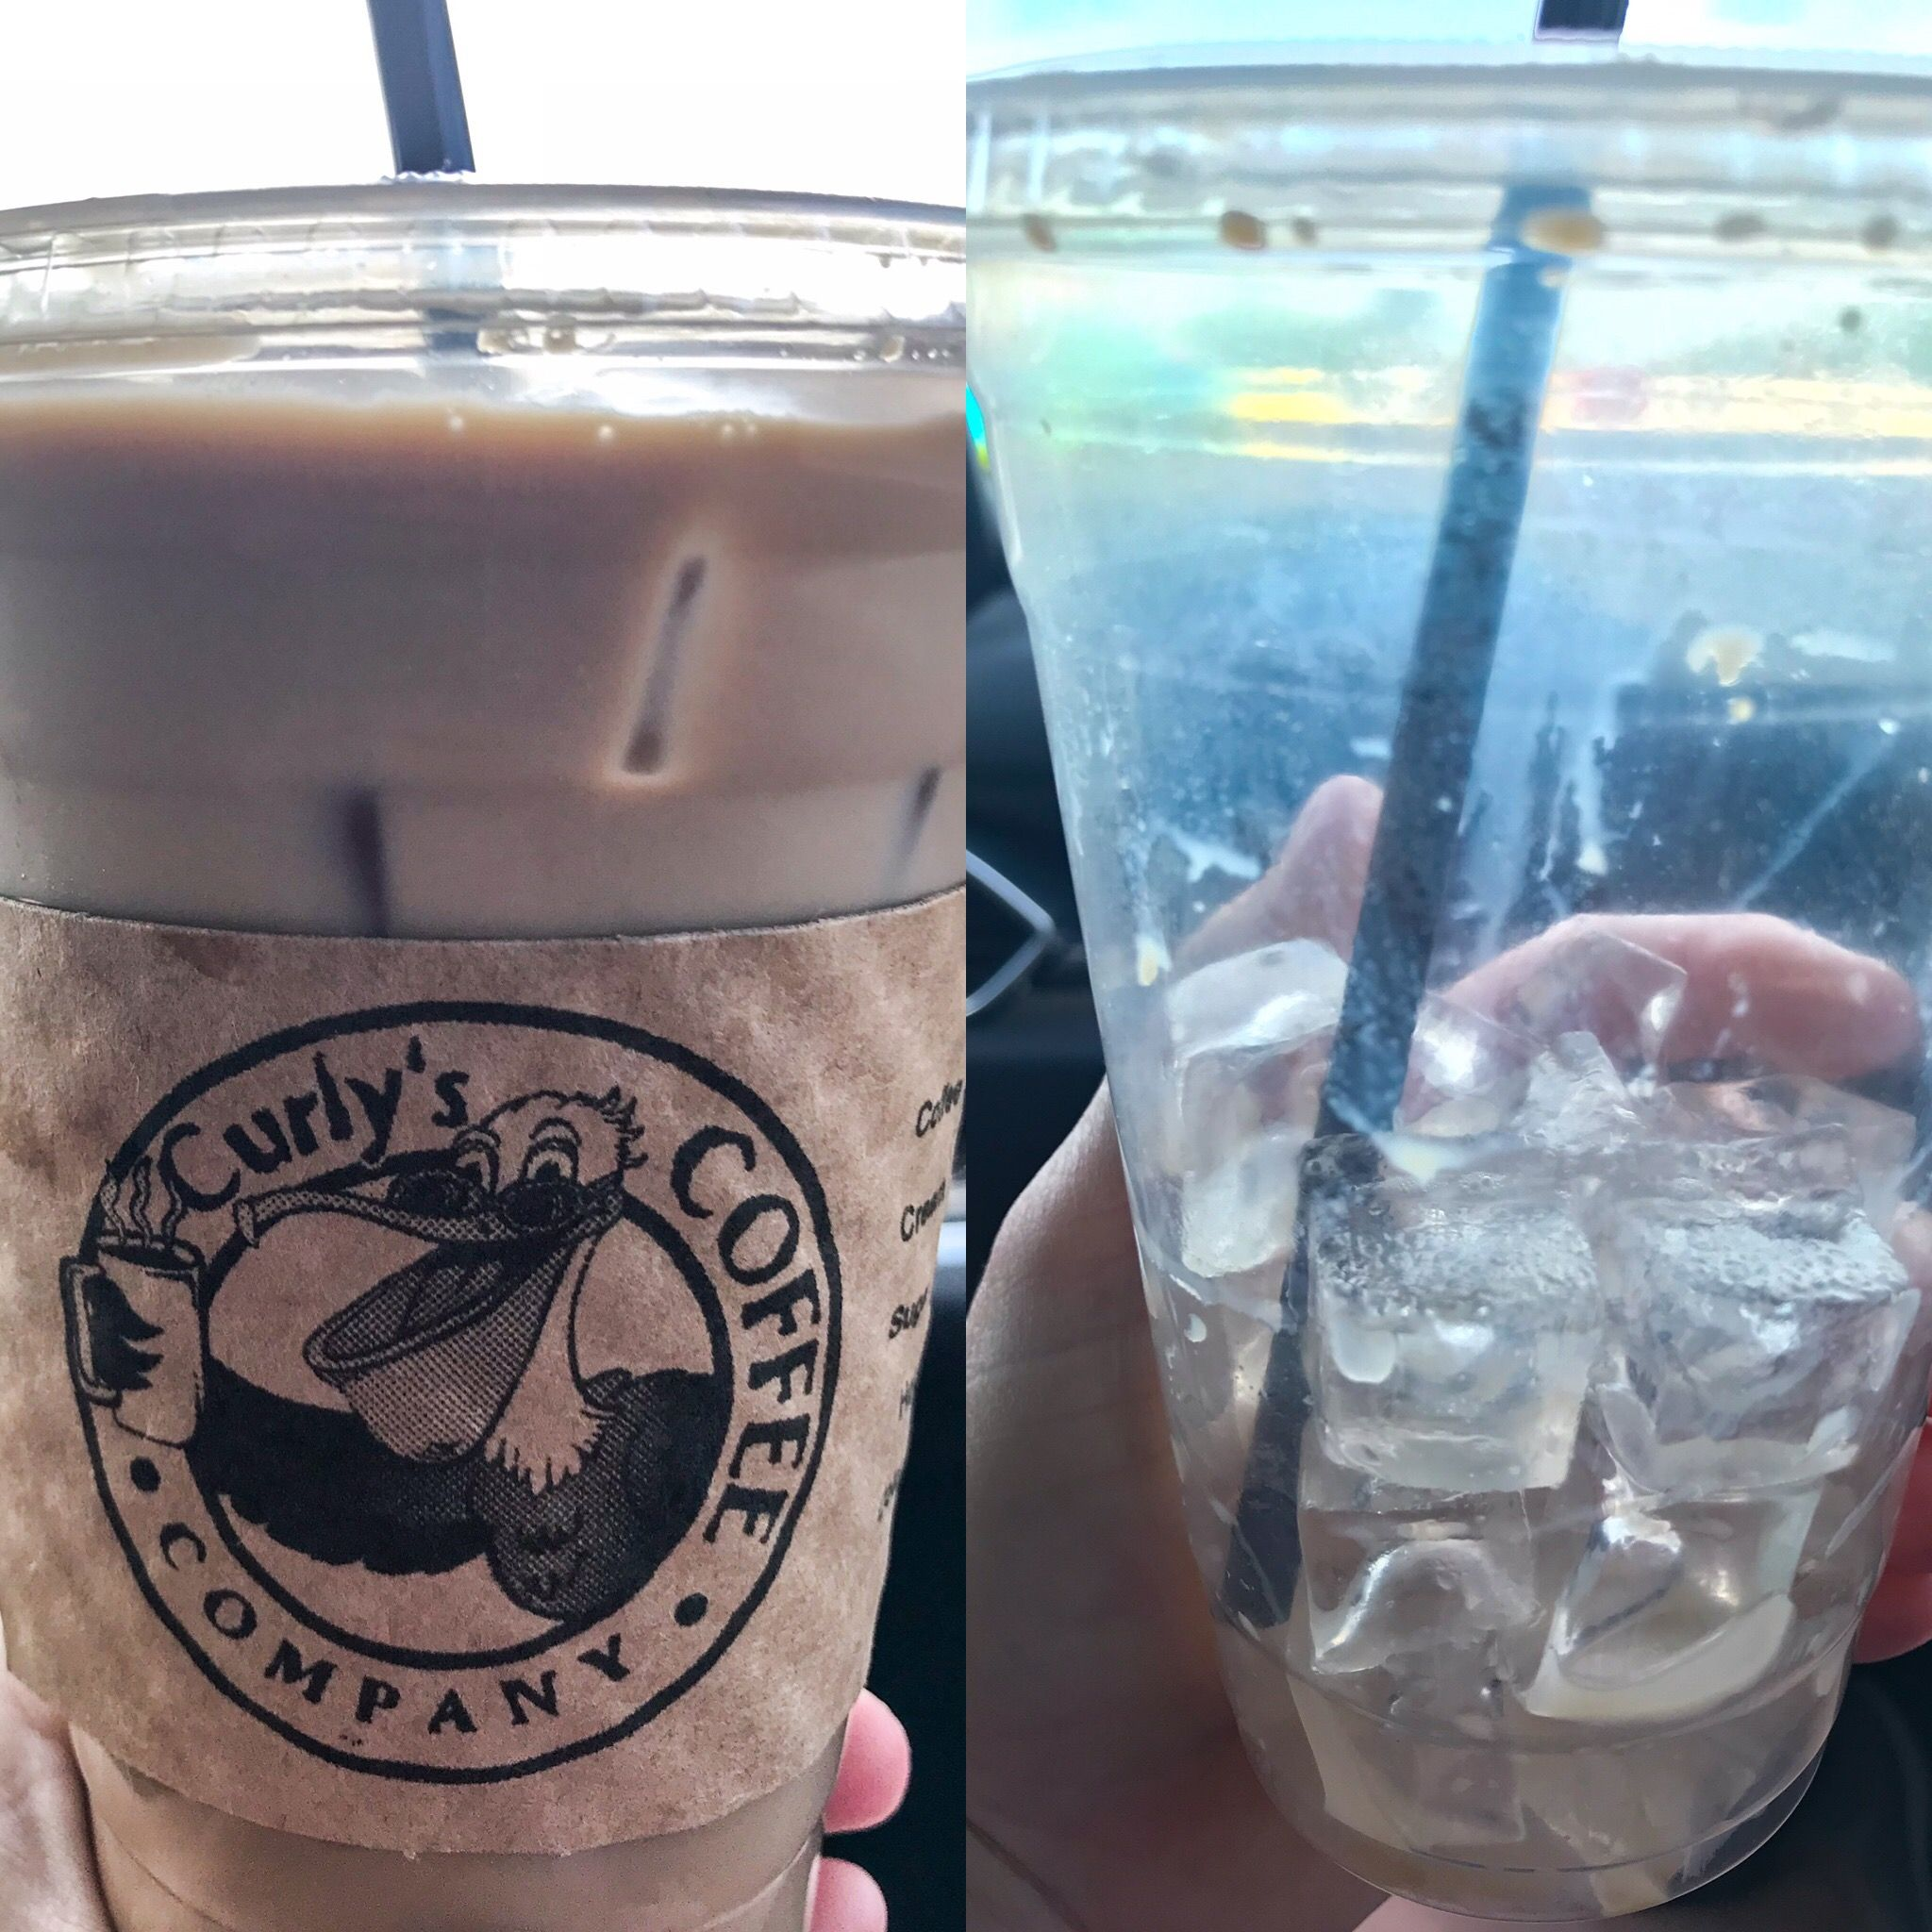 Curlys coffee in marathon fl before and after drive